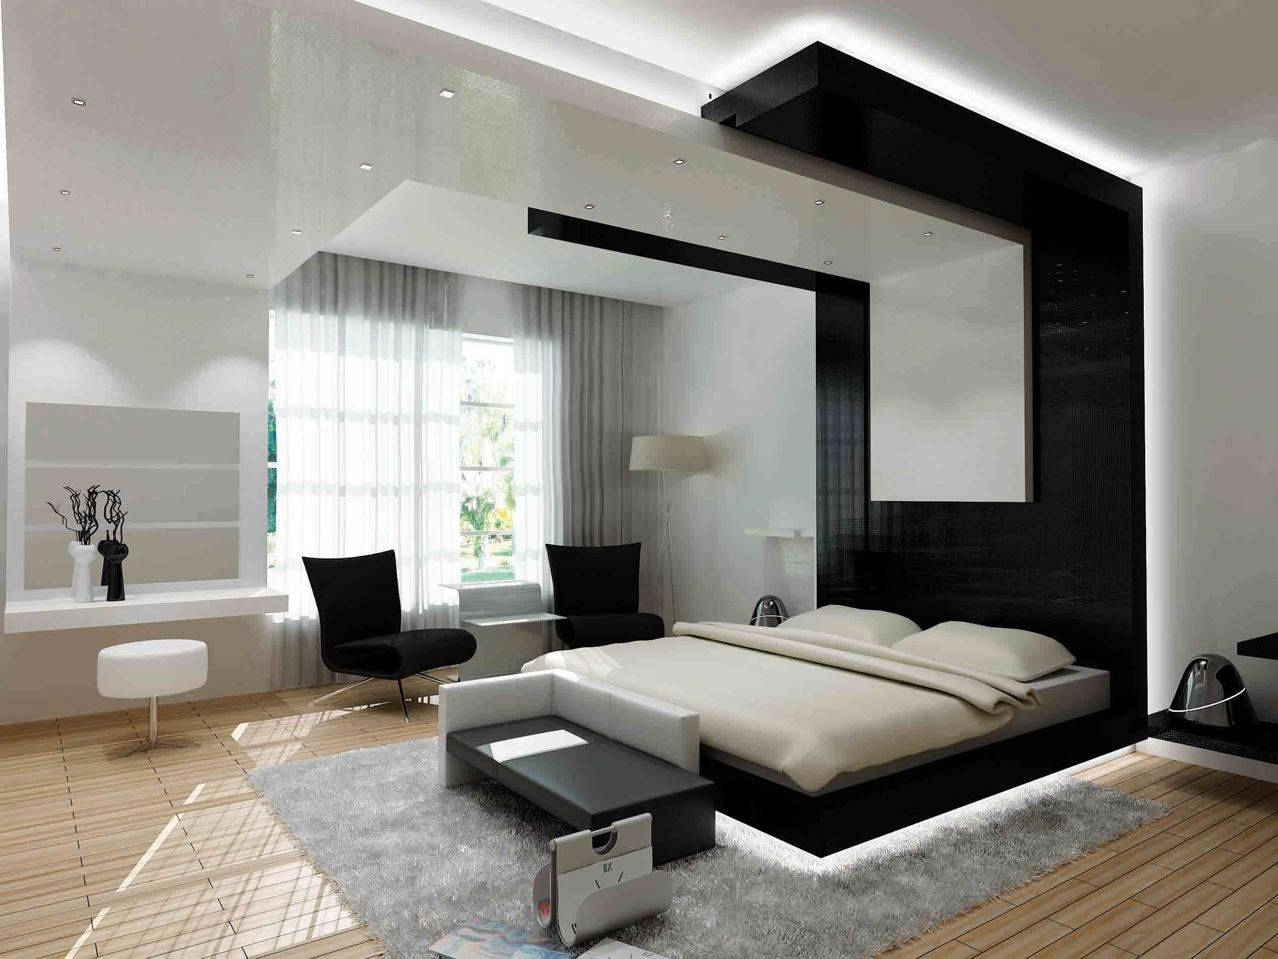 Contemporary Bedroom Design Ideas For Small Room ...